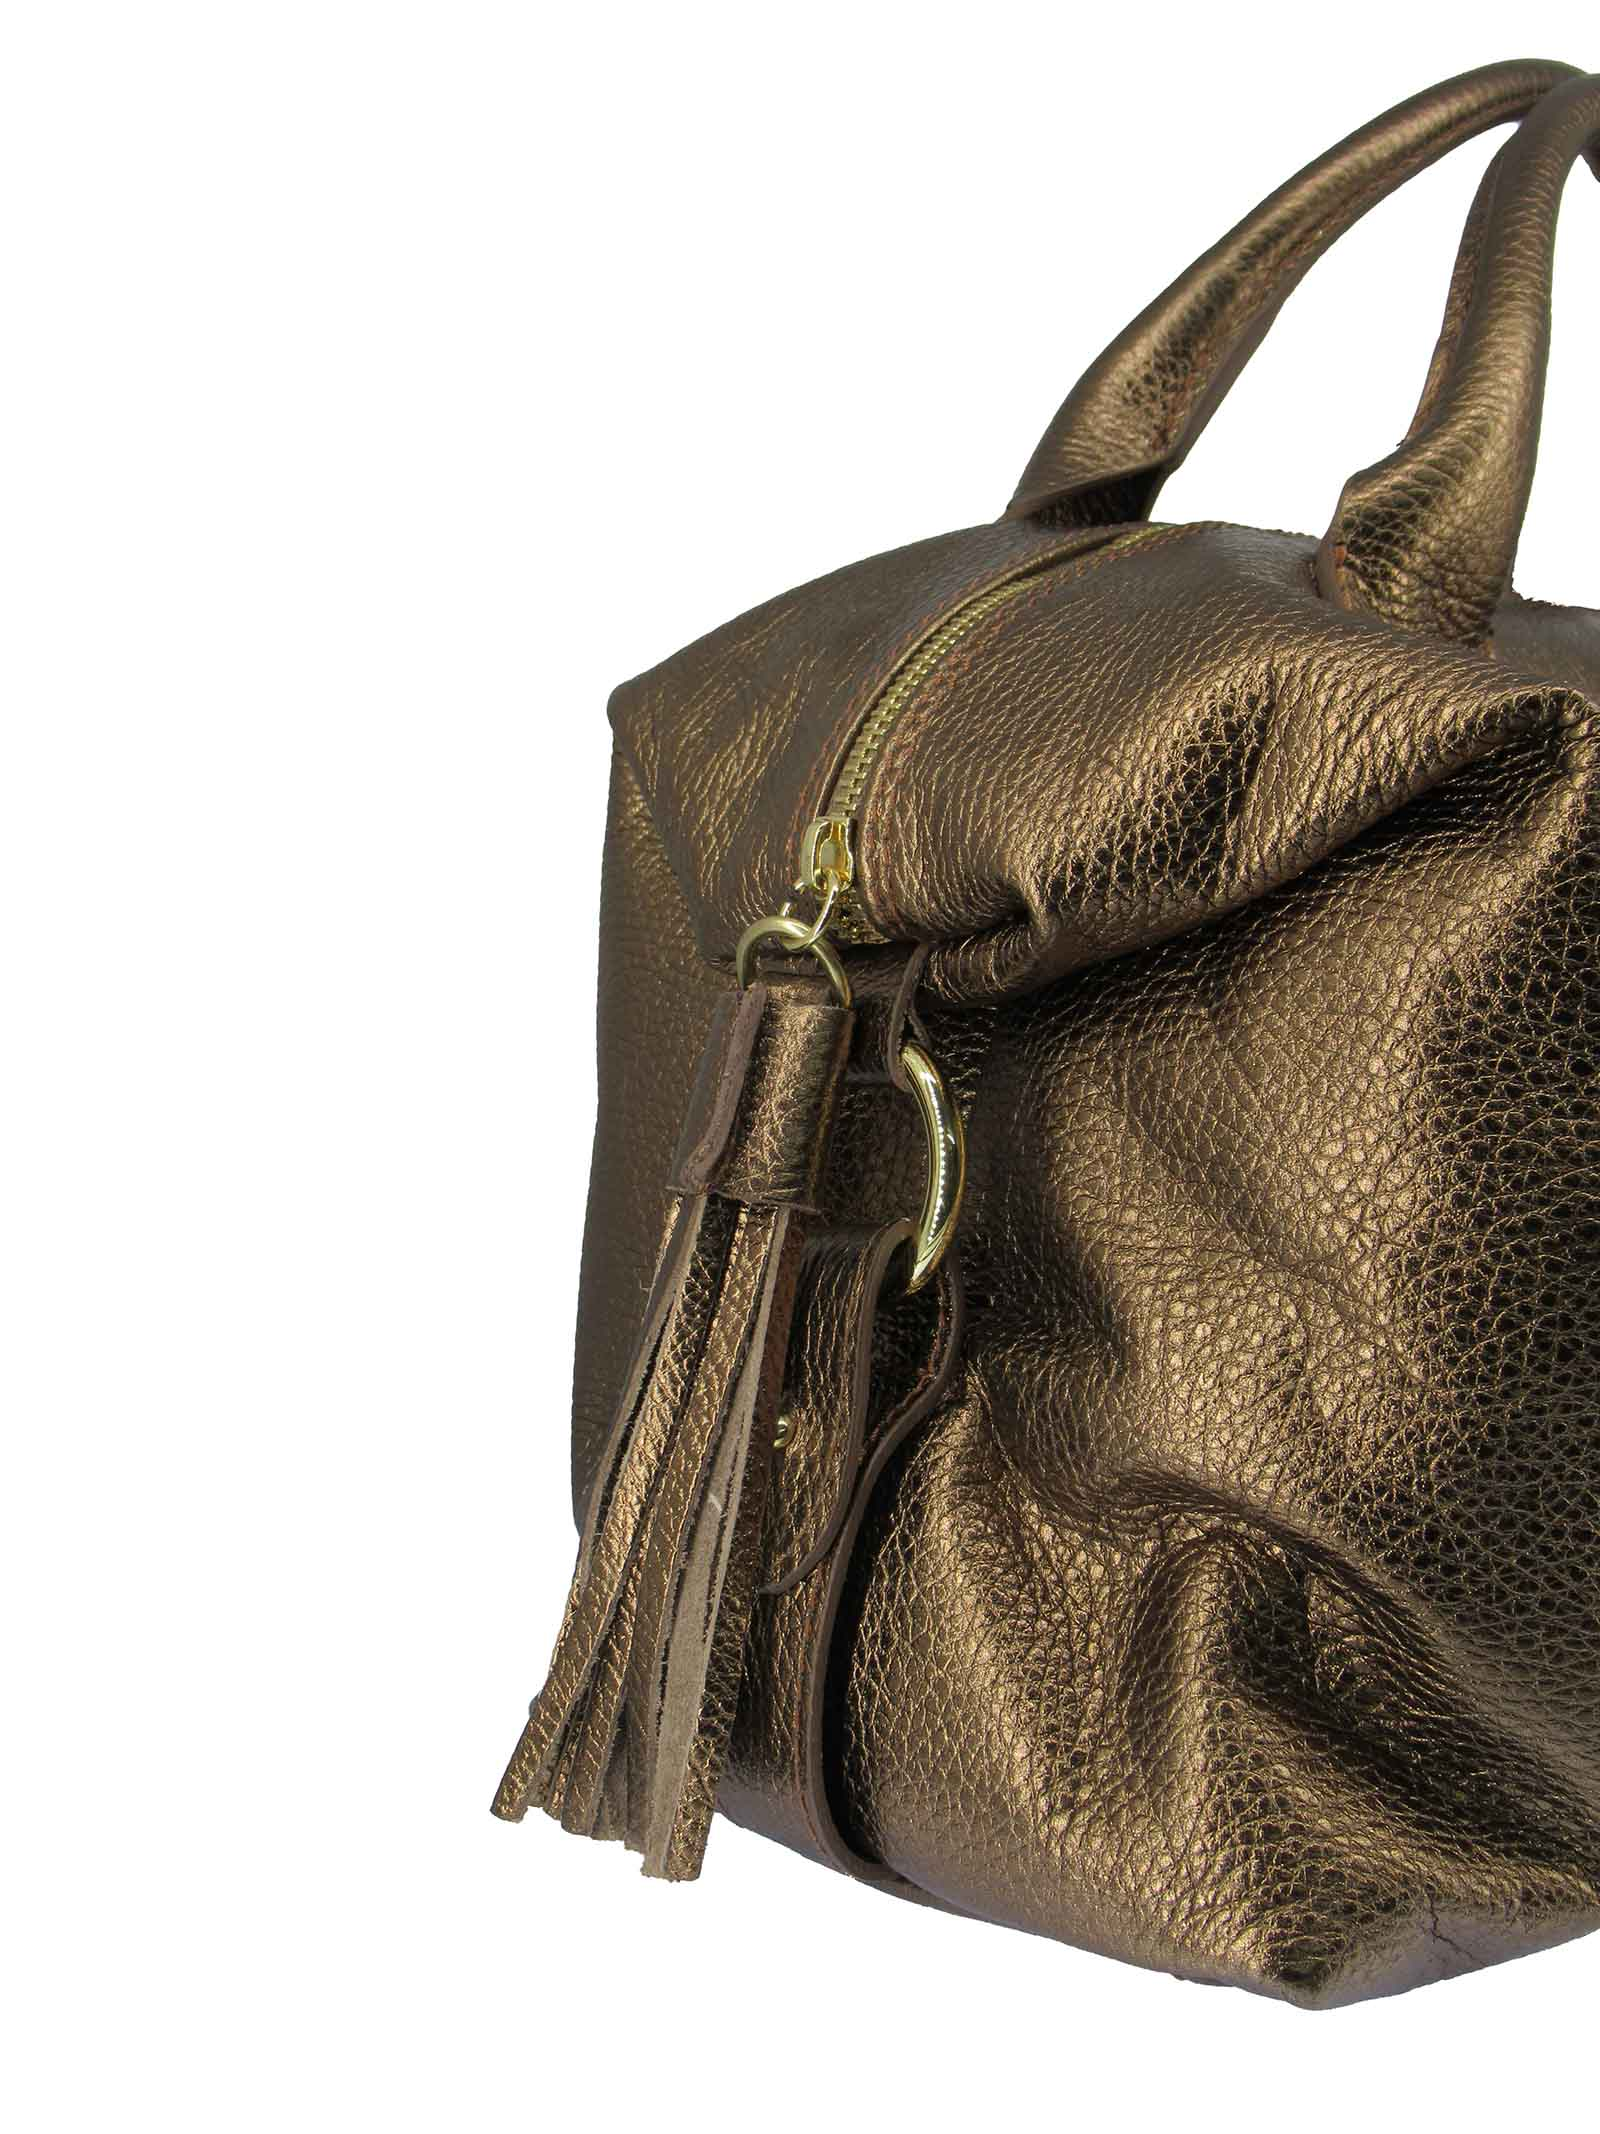 Women's River Shoulder Bag in Bronze Laminated Leather with Adjustable and Detachable Leather Shoulder Strap gd041c3111 Almala   Bags and backpacks   RIVER601